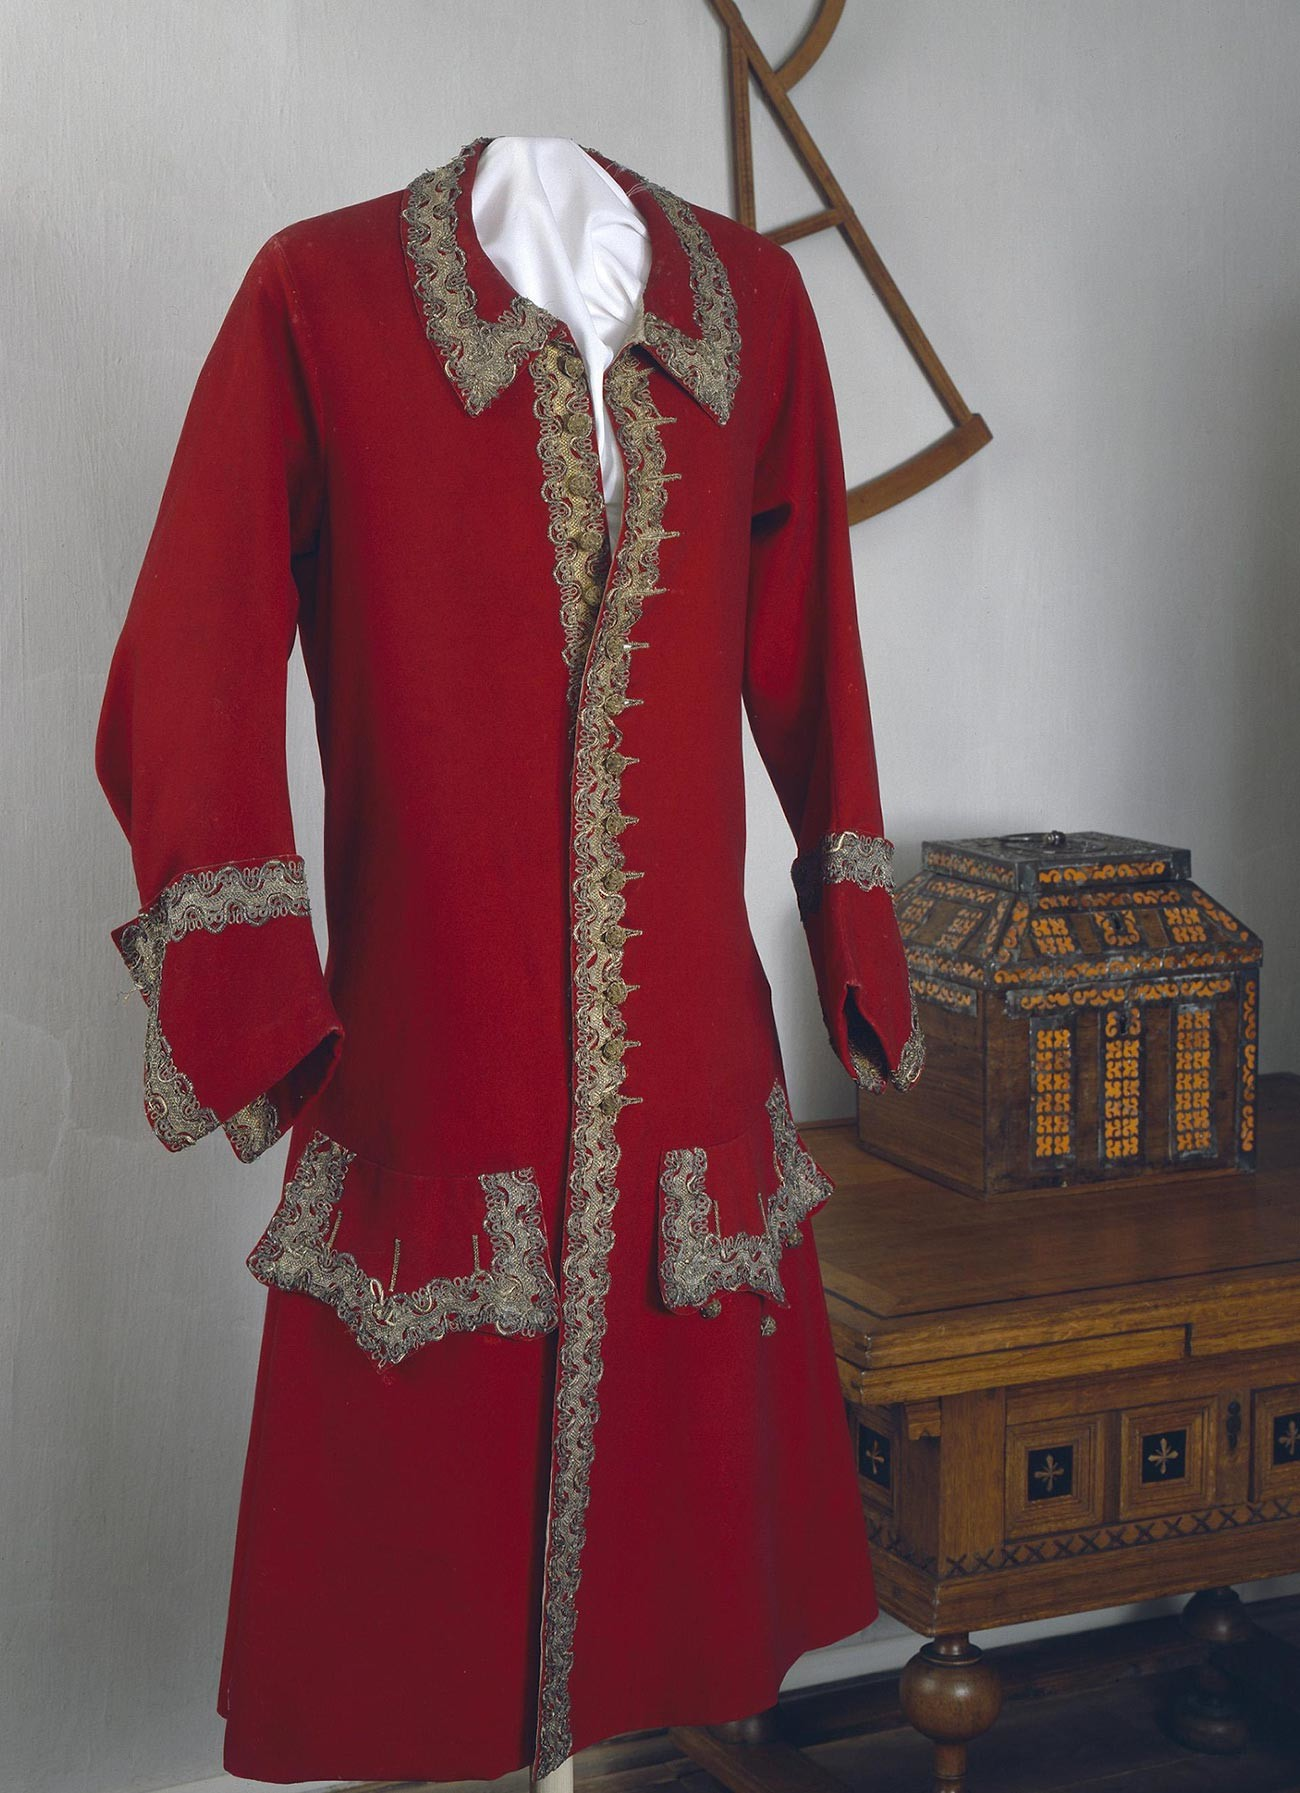 Peter the Great's ceremonial kaftan (a kind of jacket)